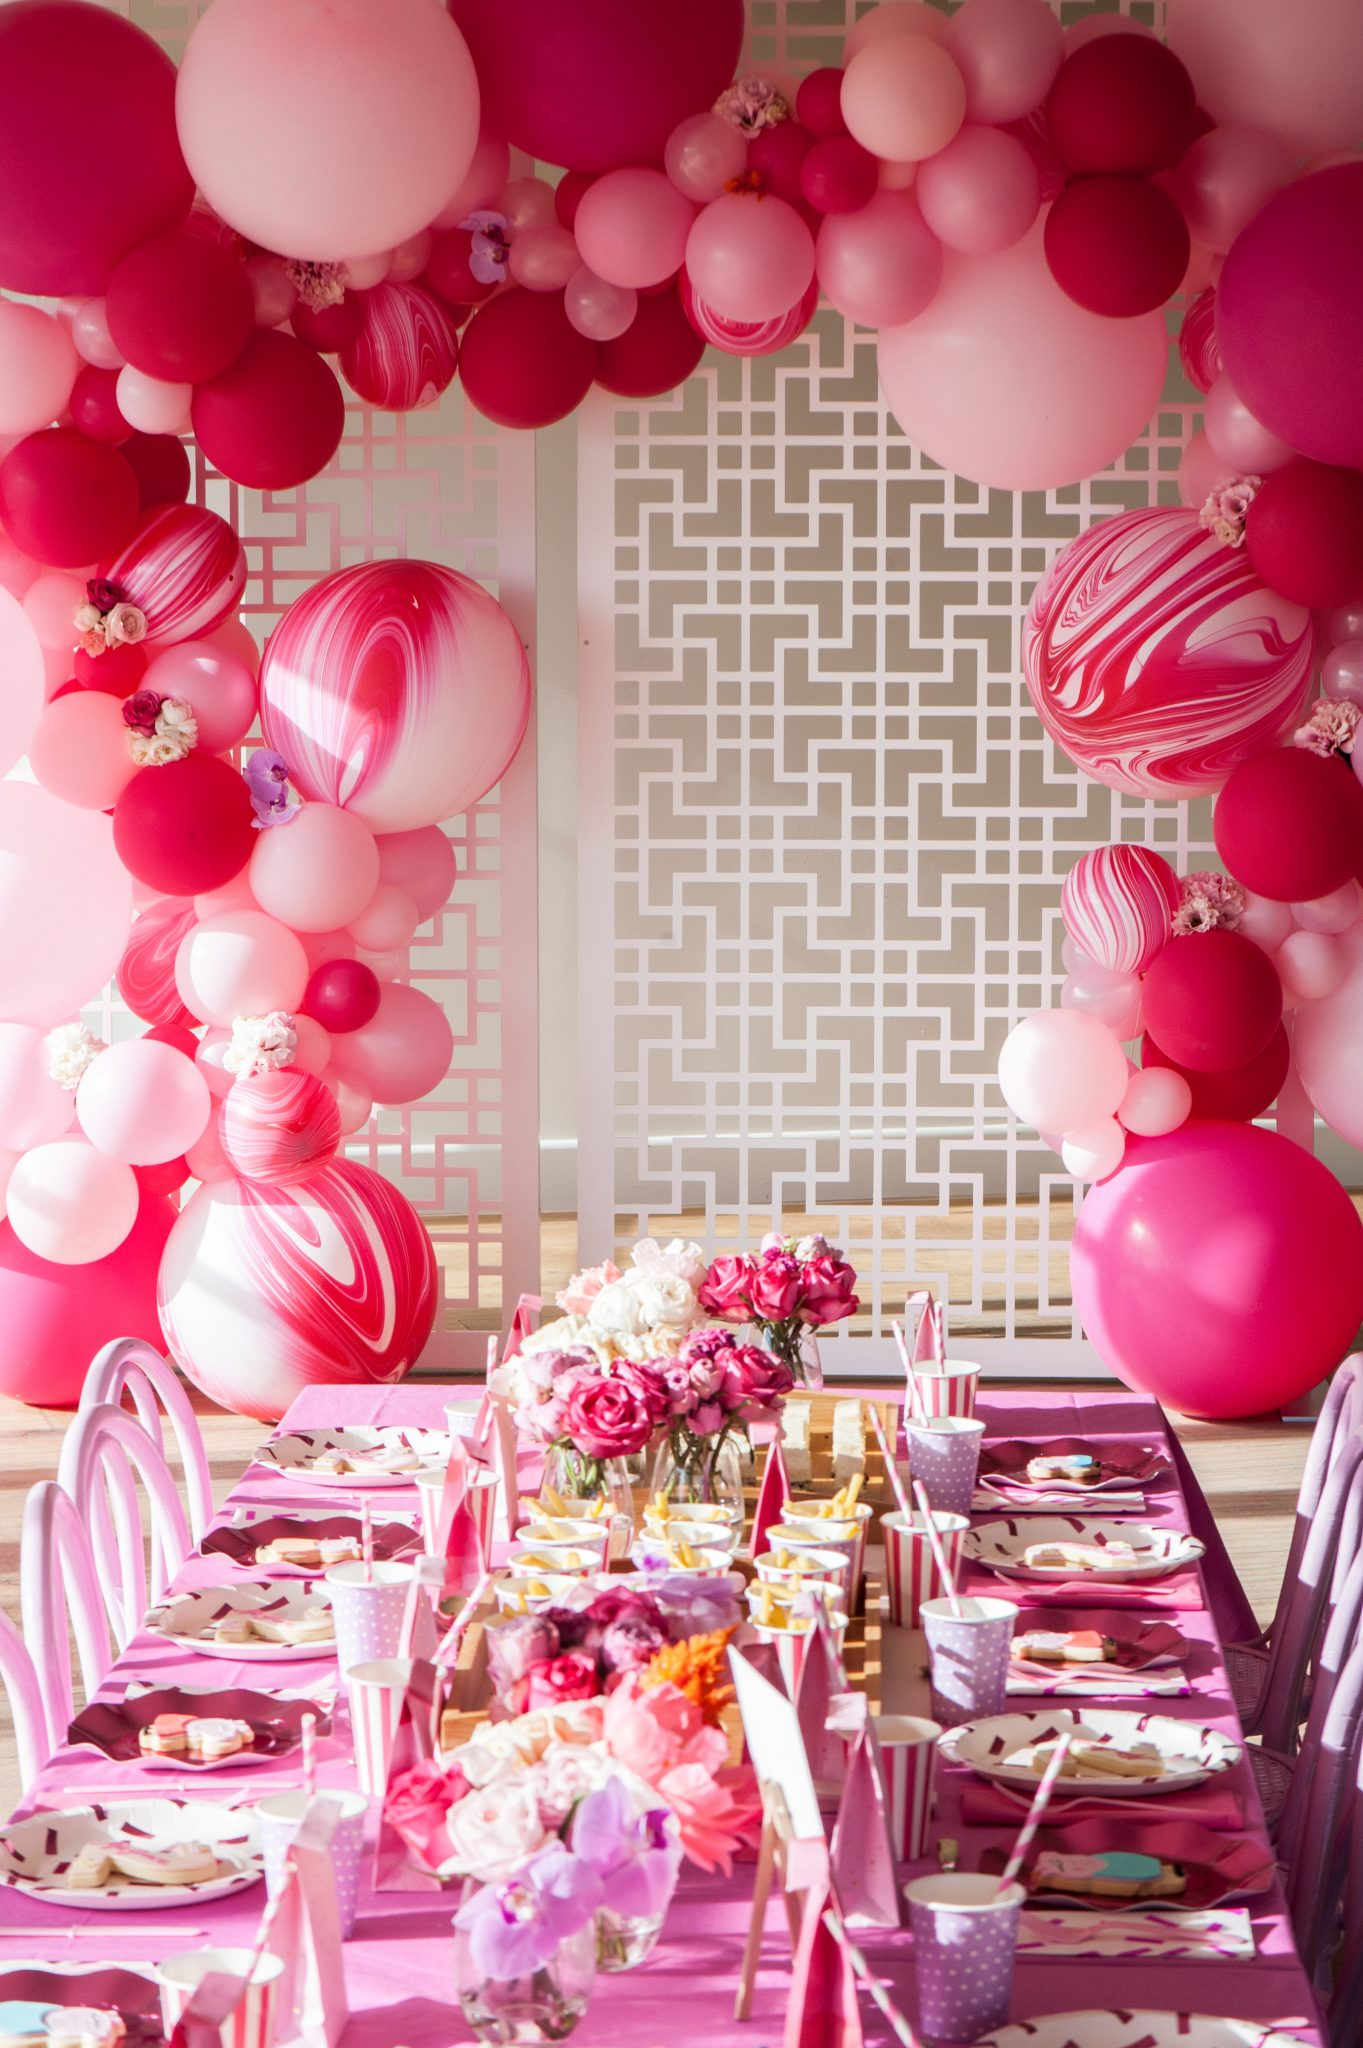 SARAH JANE YOUNG, MG TURNS TWO, BOUTIQUE BALLOONS MELBOURNE, GREENFIELDS, GREENFIELDS ALBERT PARK, ATLANTIC GROUP, MARY MARY STUDIO, LITTLE BIG LETTER CO, STYLING, PINK STYLING, SARAH JANE YOUNG, SHEISSARAHJANE